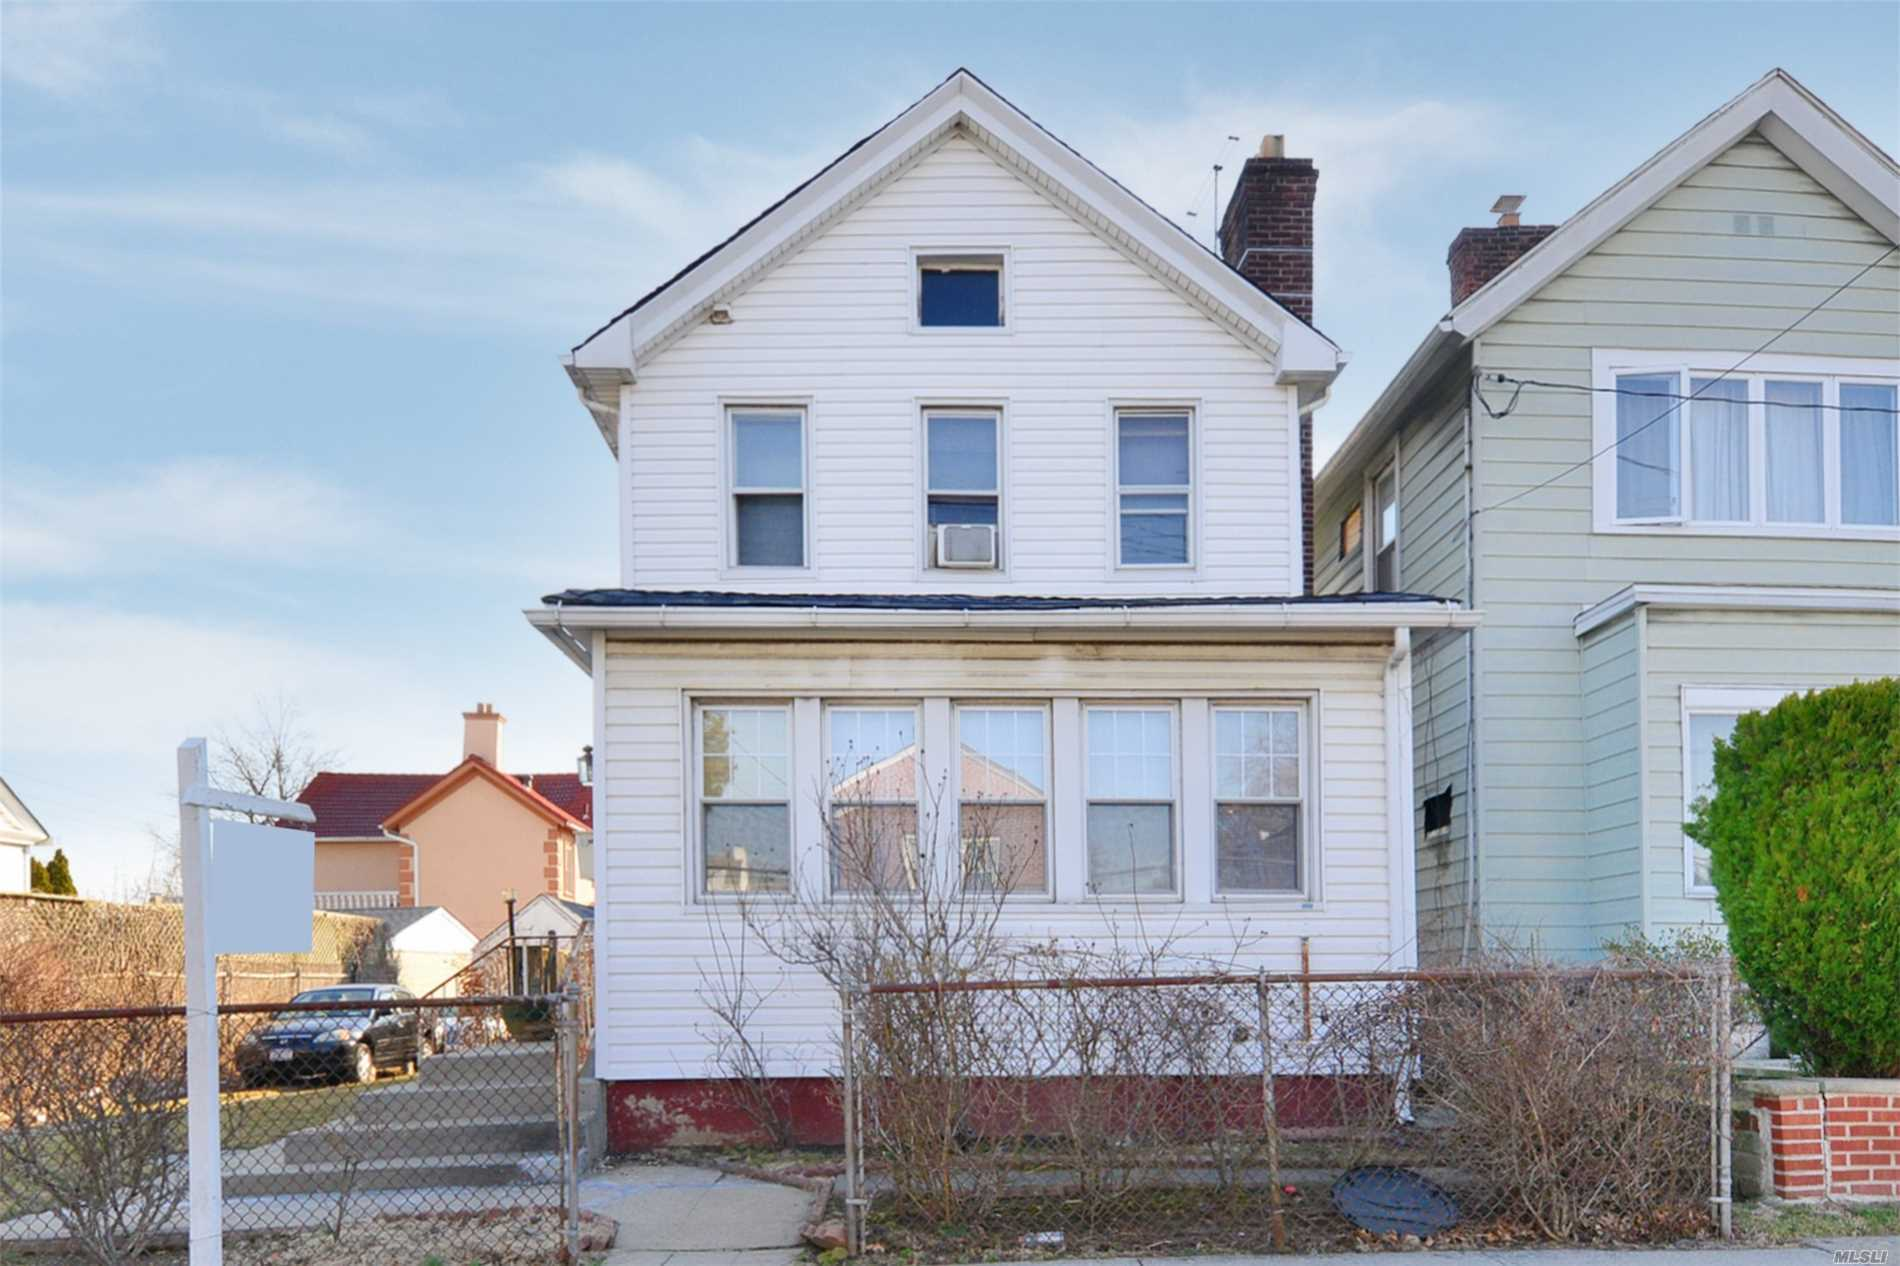 Just arrived- this property is perfect for rebuild/expansion as it is oversized at 5, 000 square feet. Great location- convenient to all. SD 25 - P.S. 193 Alfred J. Kennedy, J.H.S. 194 William Carr, Flushing High School.